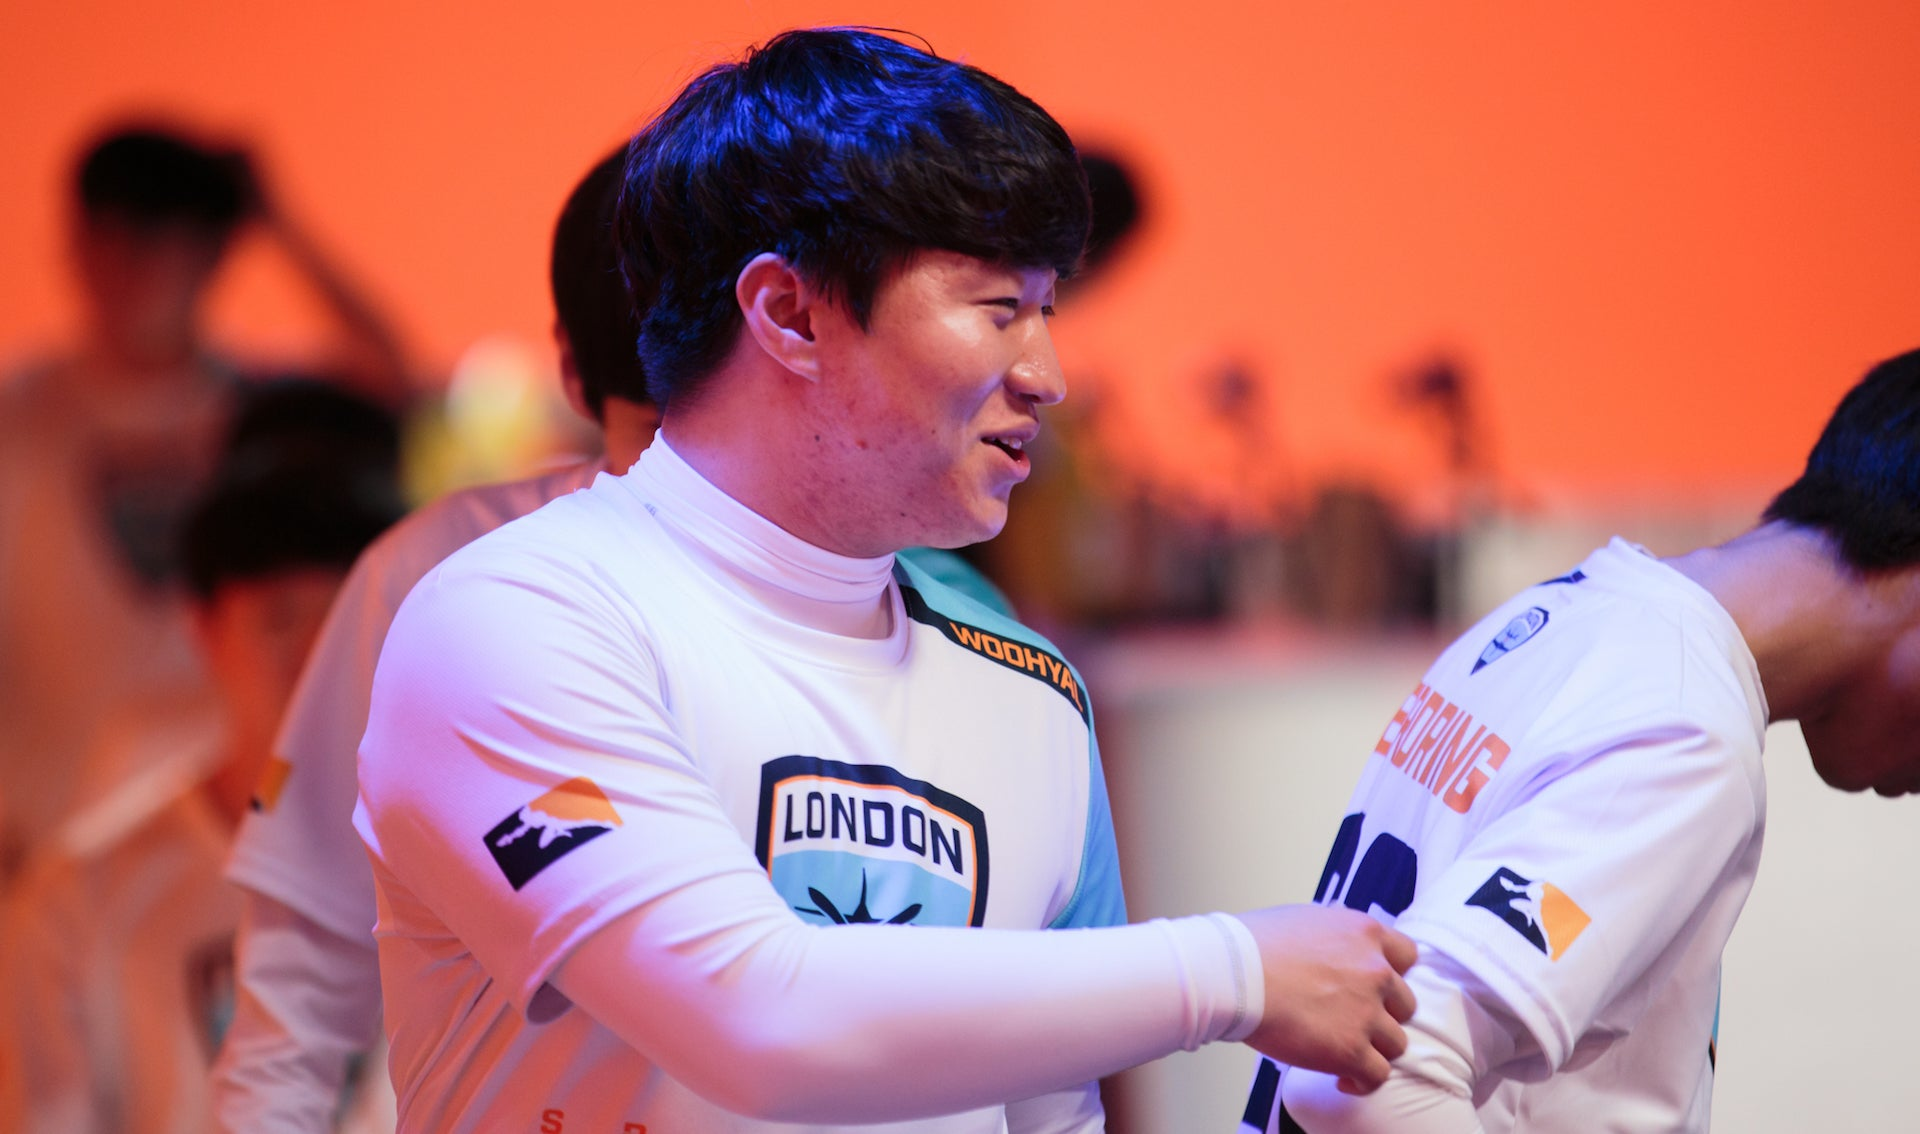 The Overwatch League's Dominant Team Got The Crap Kicked Out Of Them